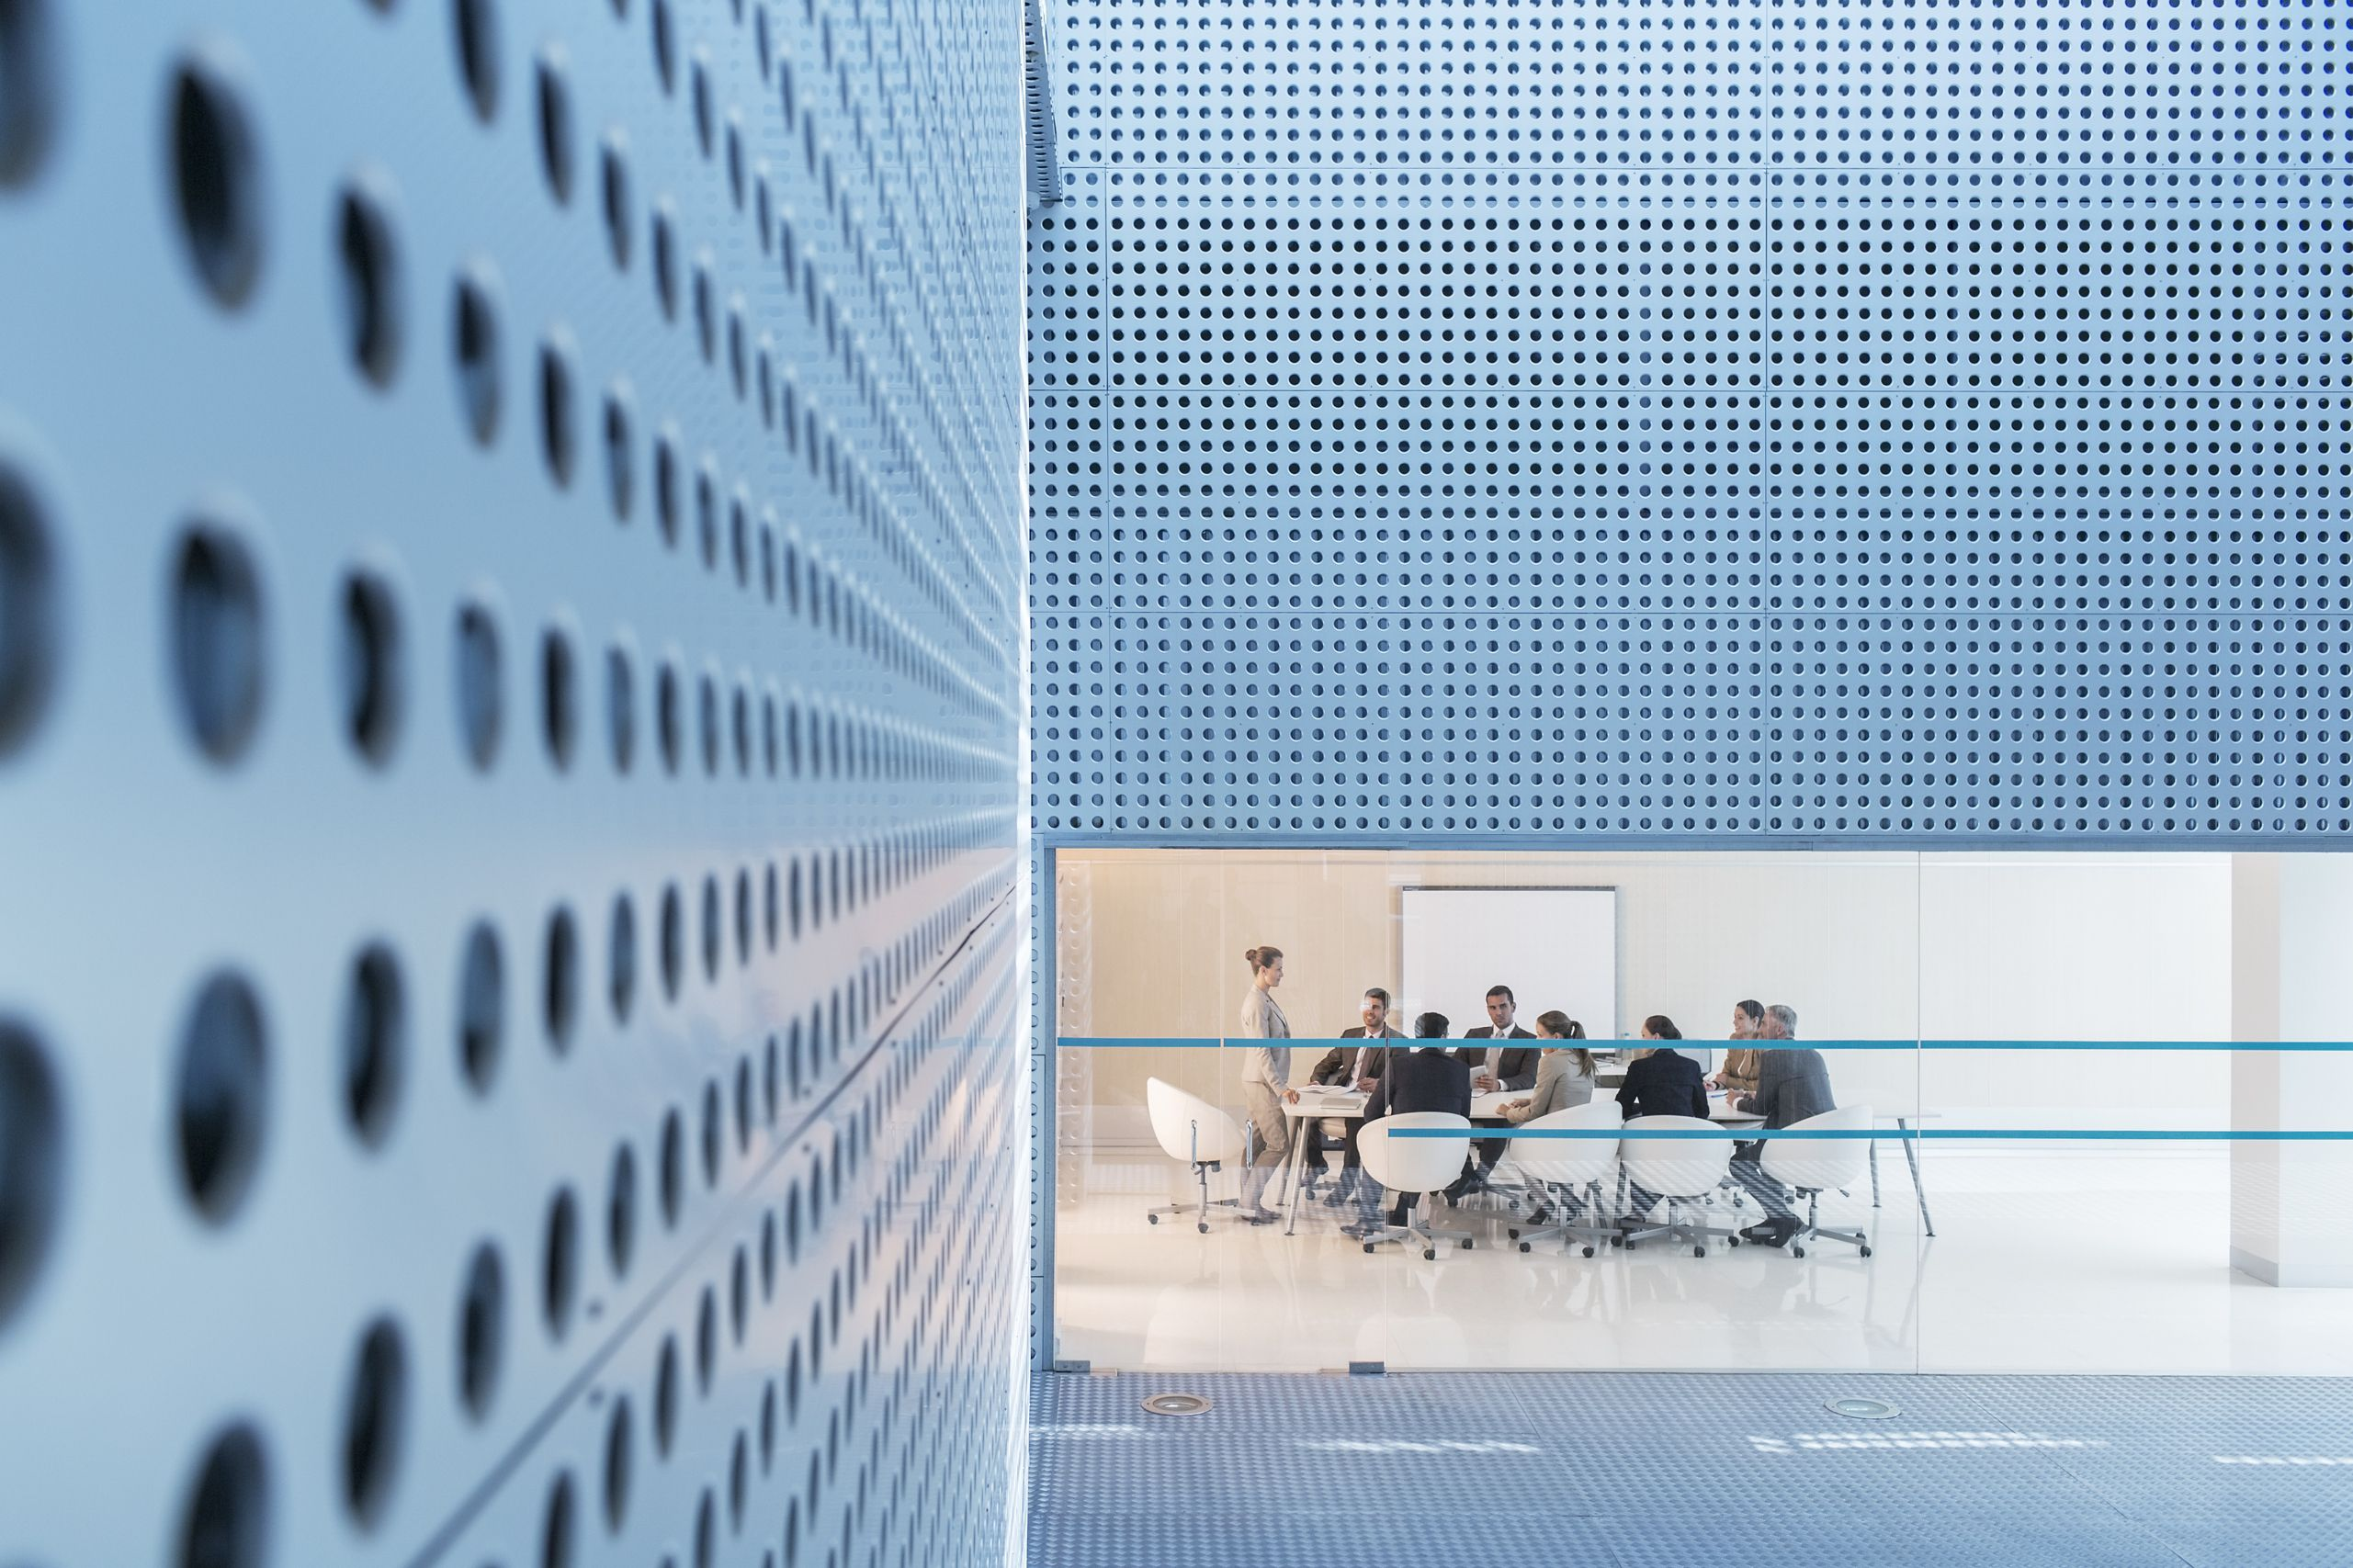 close up of wall with people sitting at an office table in the far distance